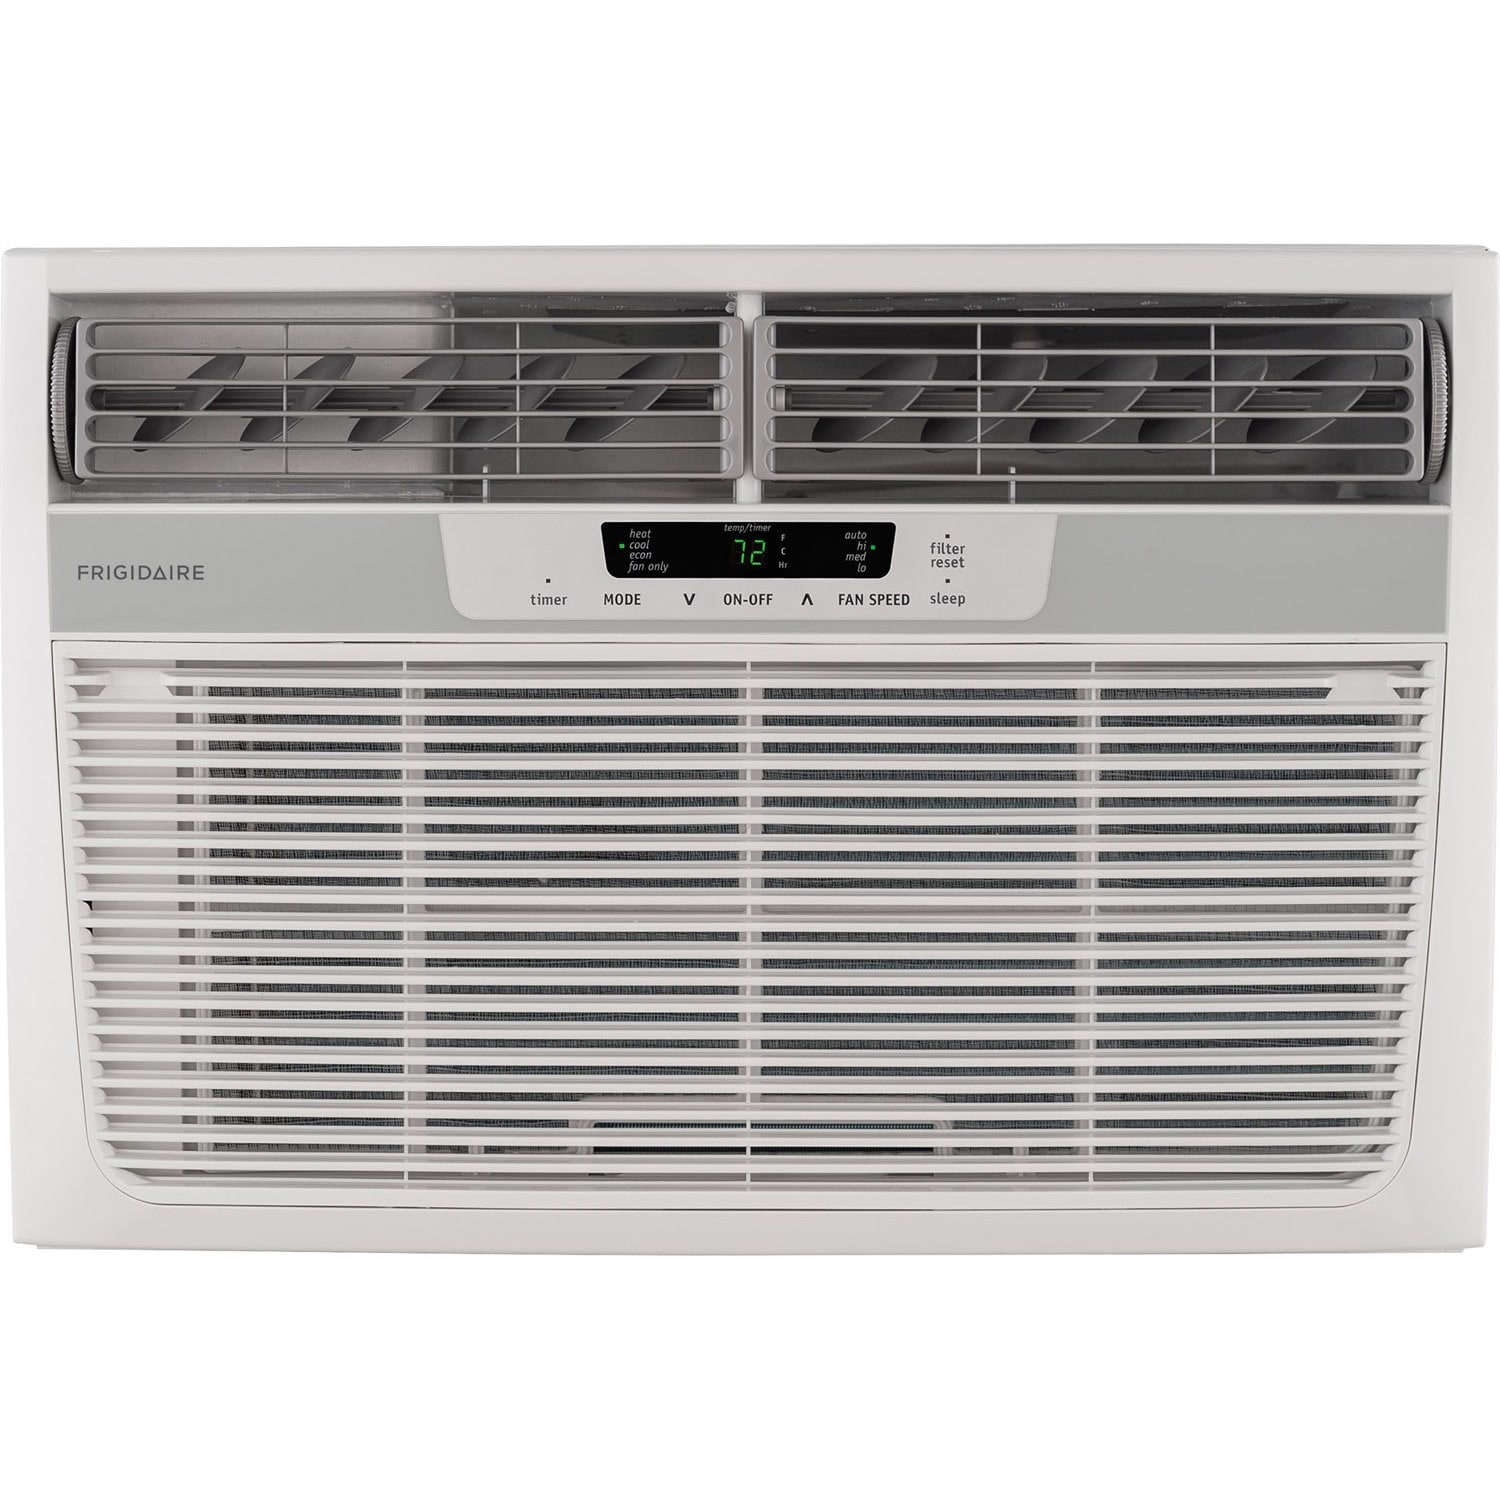 Frigidaire 18,500 BTU Room Air Conditioner with 16,000 BT...